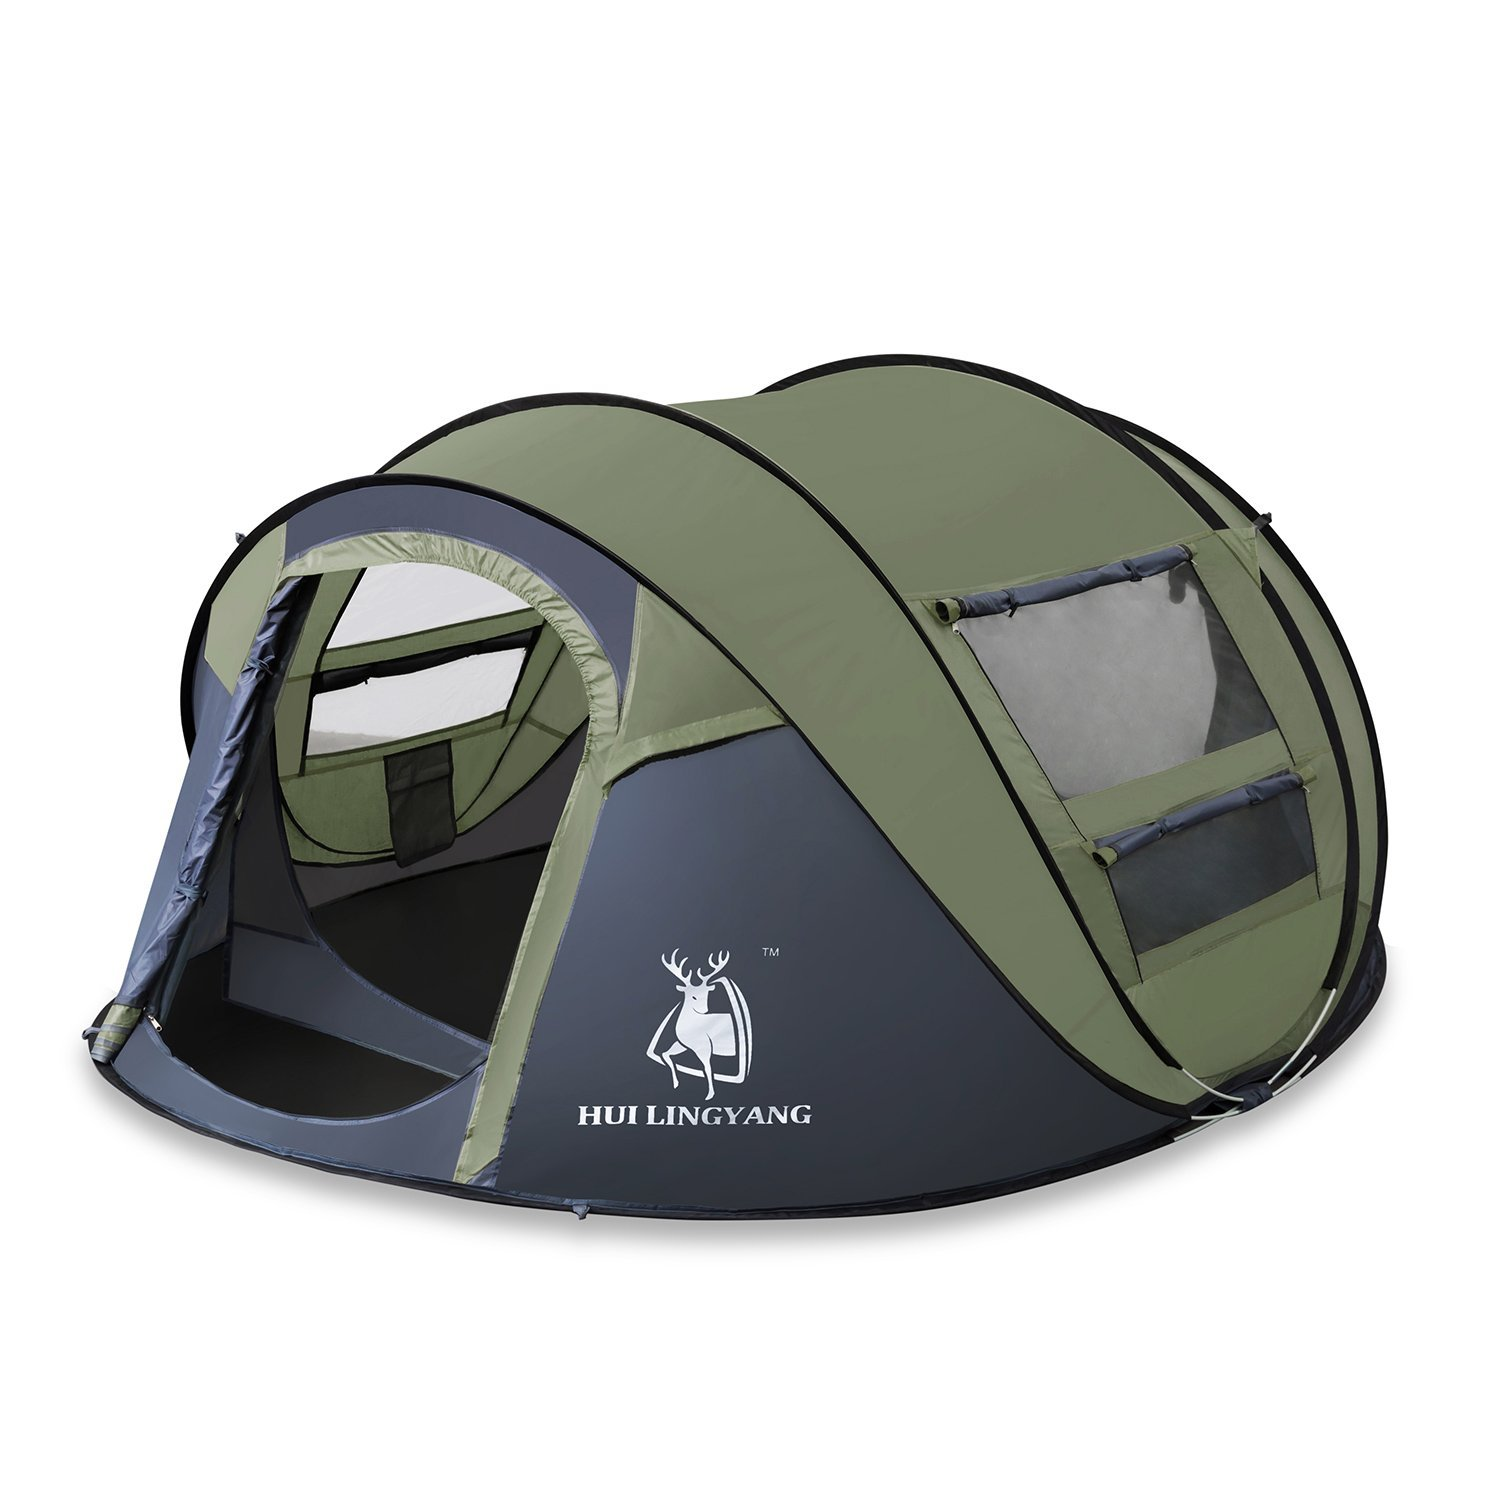 6e43b17c01 Hui Lingyang Outdoor Instant 4 Person Dome Tent Review